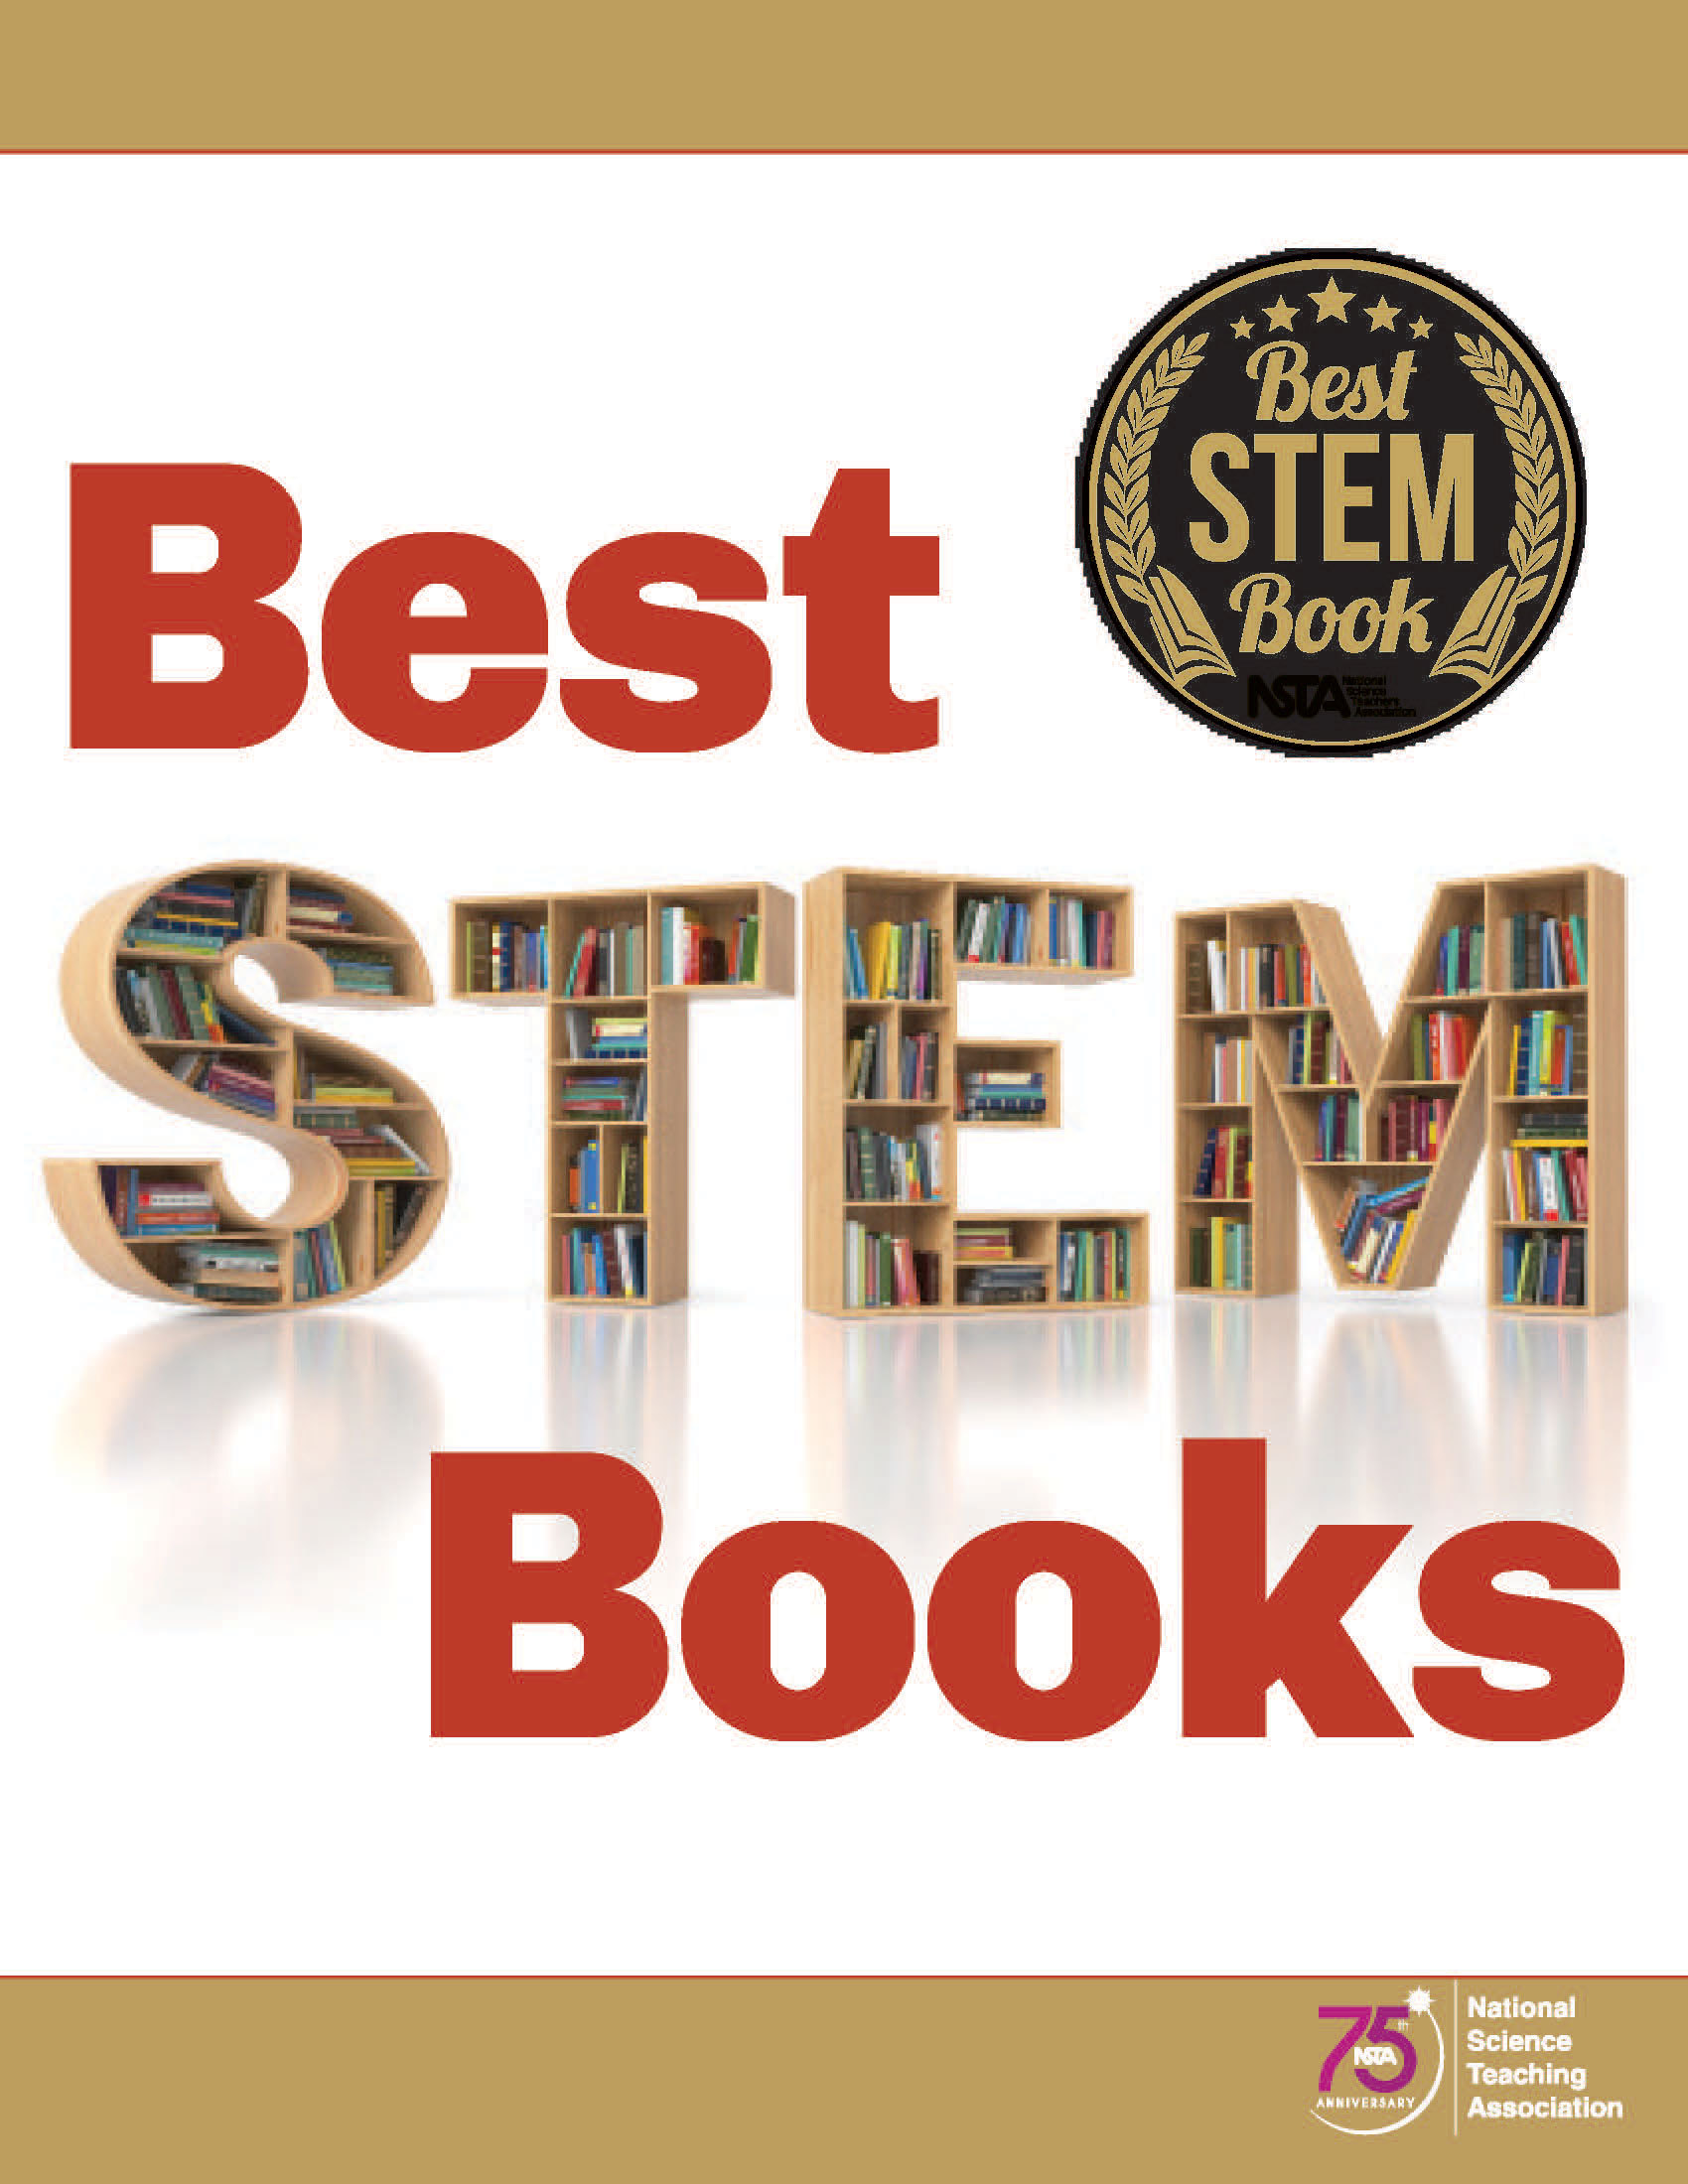 Best Business Books 2020.Nsta Unveils List Of The Best Stem Books For K 12 Students